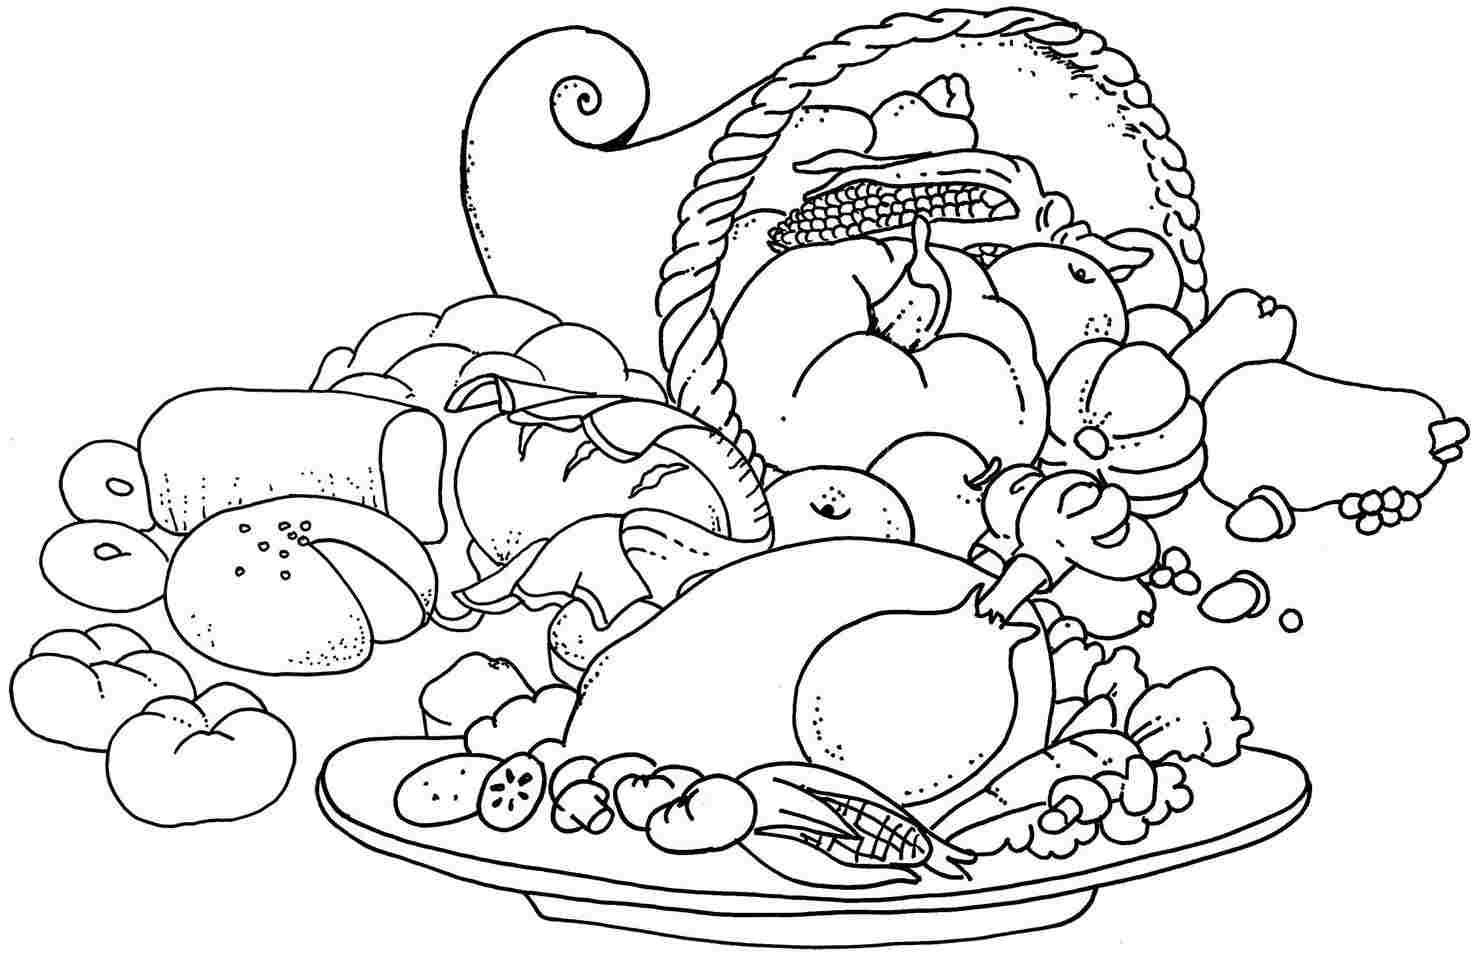 Thanks Giving Dinner Thanksgiving Coloring Pages Turkey